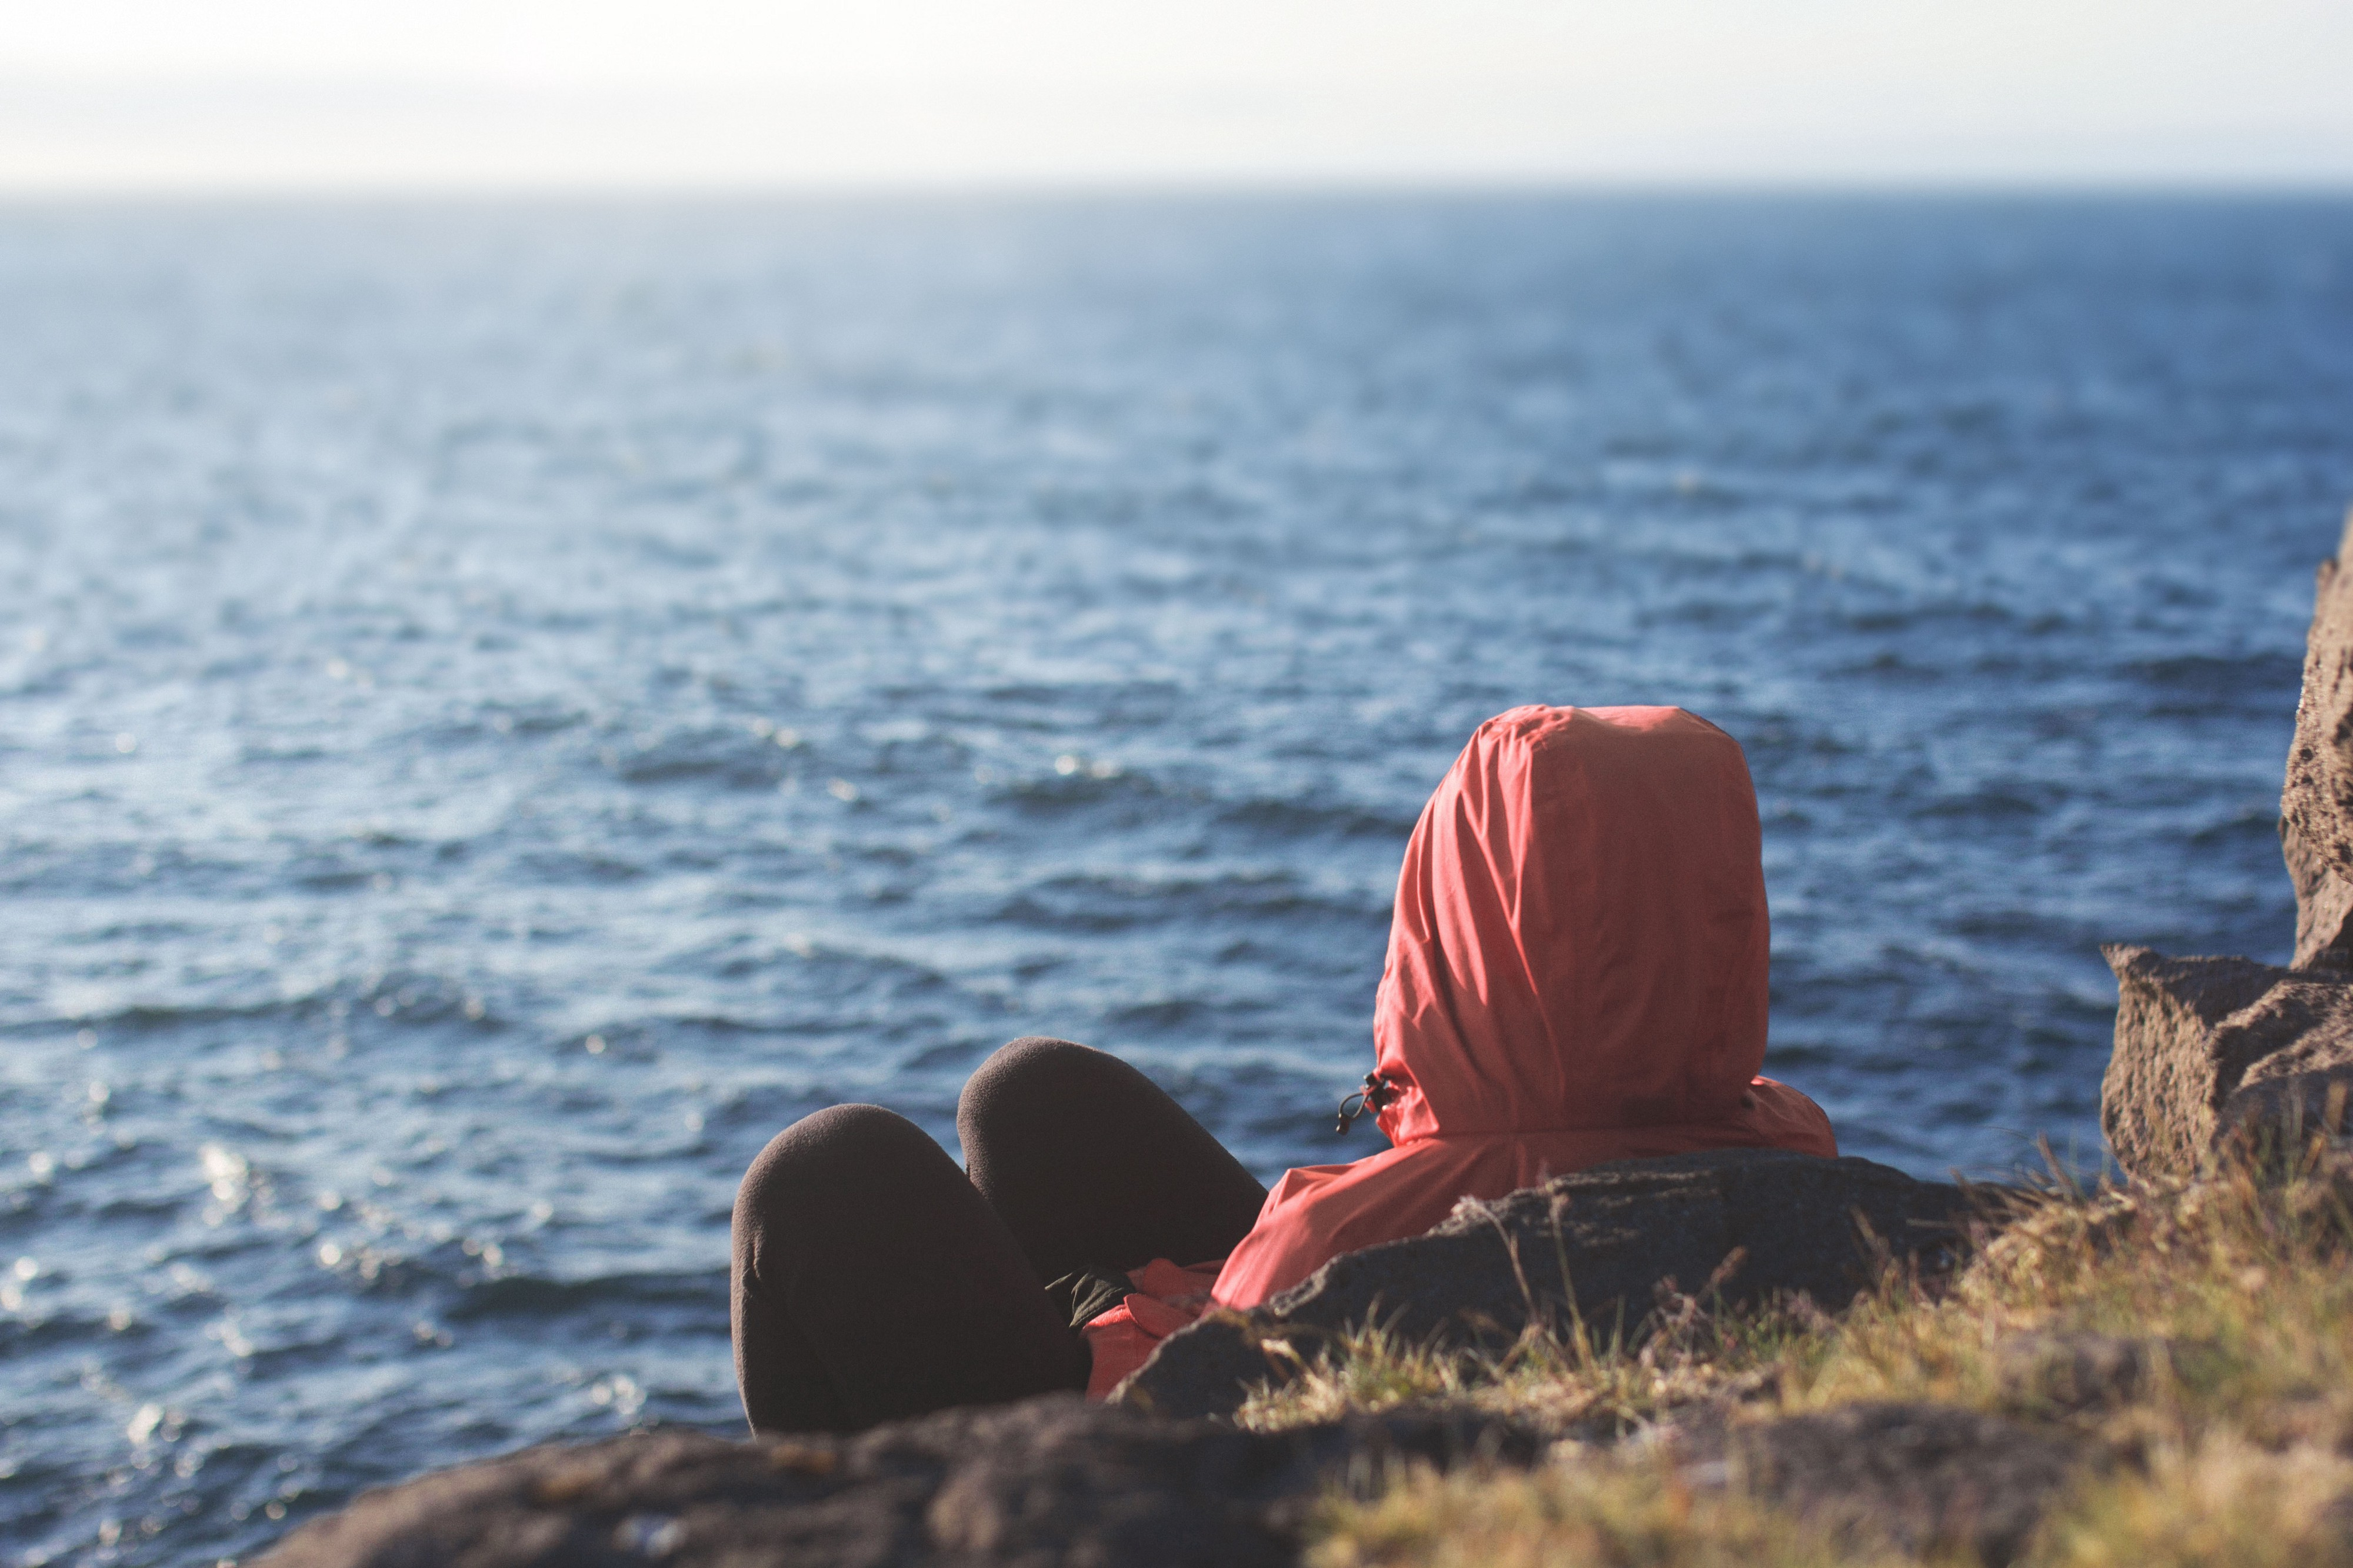 Photo of a person wearing a hoodie leaning on some rocks at the beach and looking out at the ocean